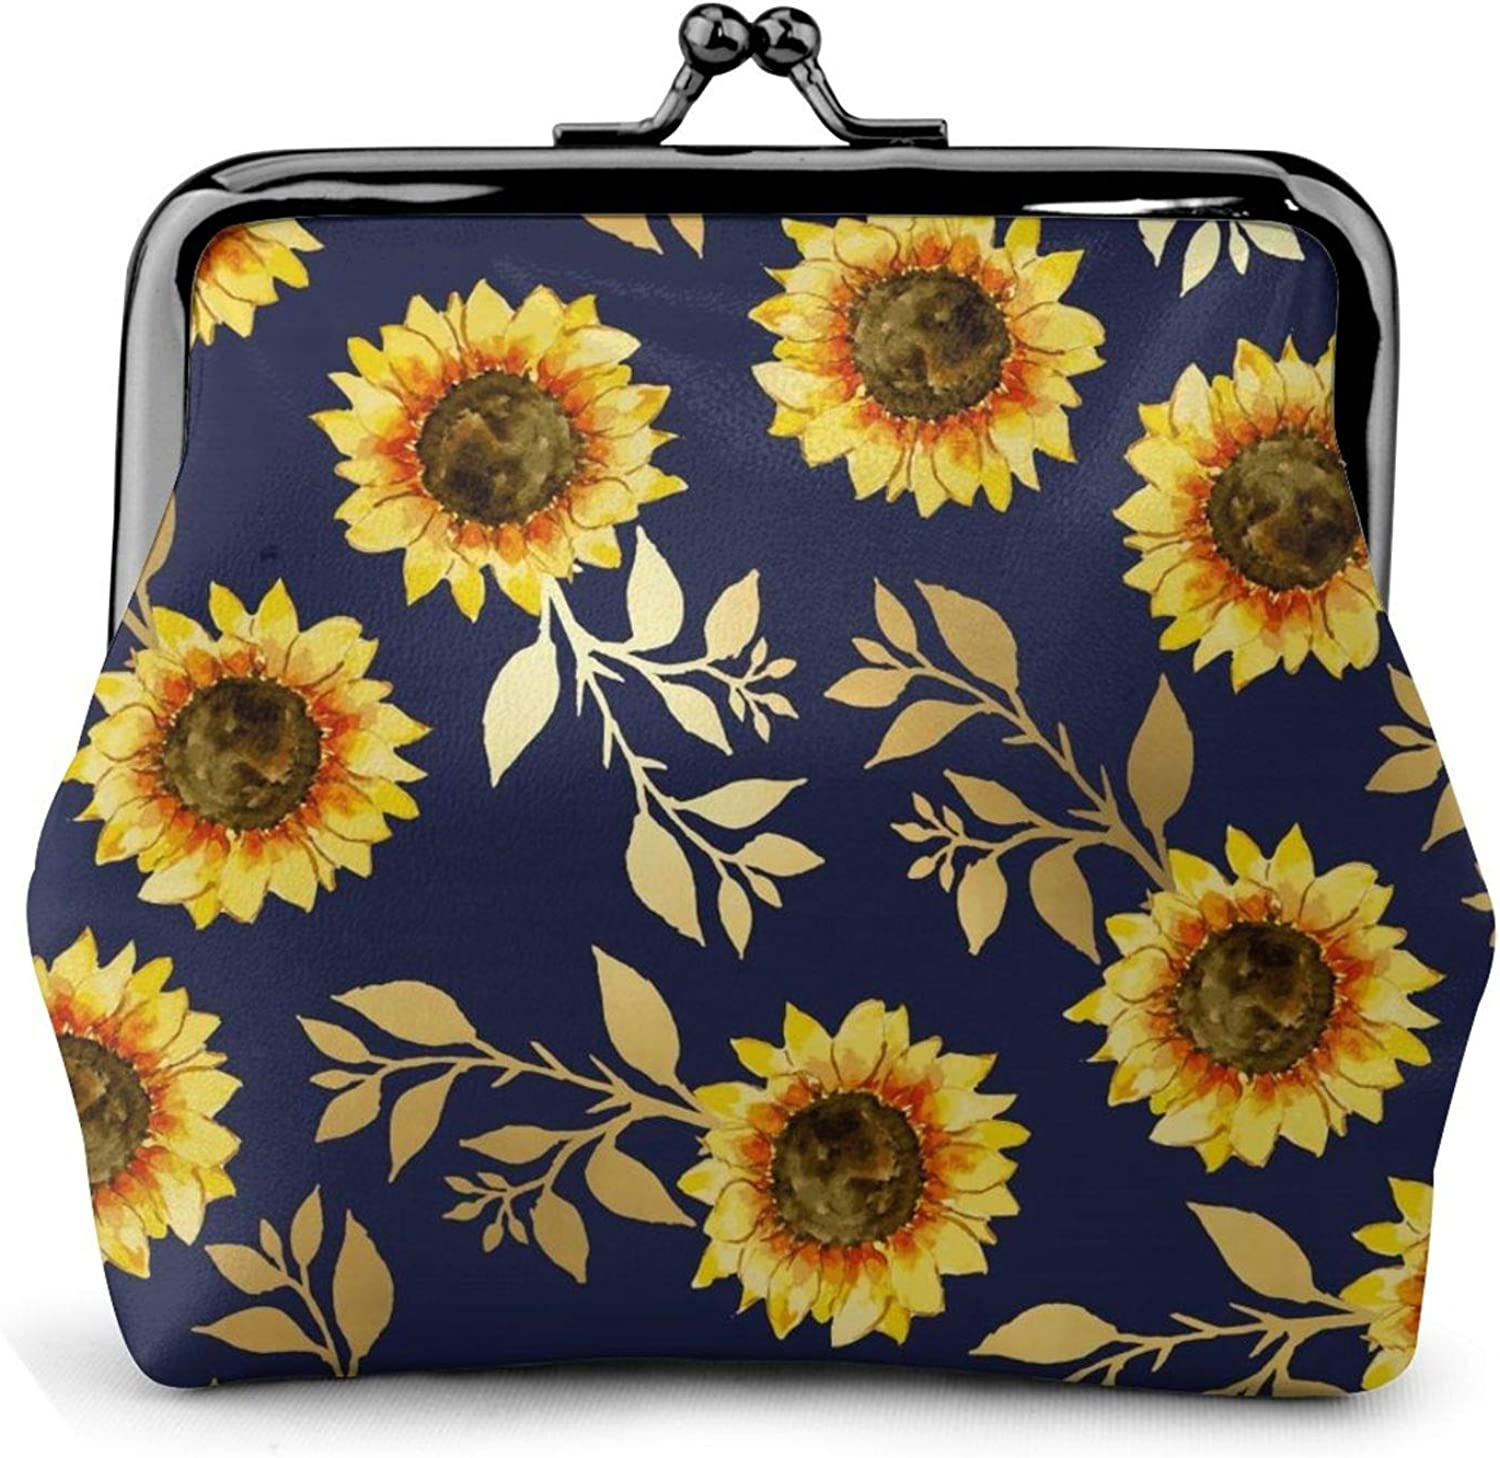 sunny yellow gold navy sunflowers Buckle Coin Purses Women's Kiss-lock Closure Mini Vintage Pouch Leather Hasp Makeup Wallets Card Holder Cute for Men Women Girls Bags